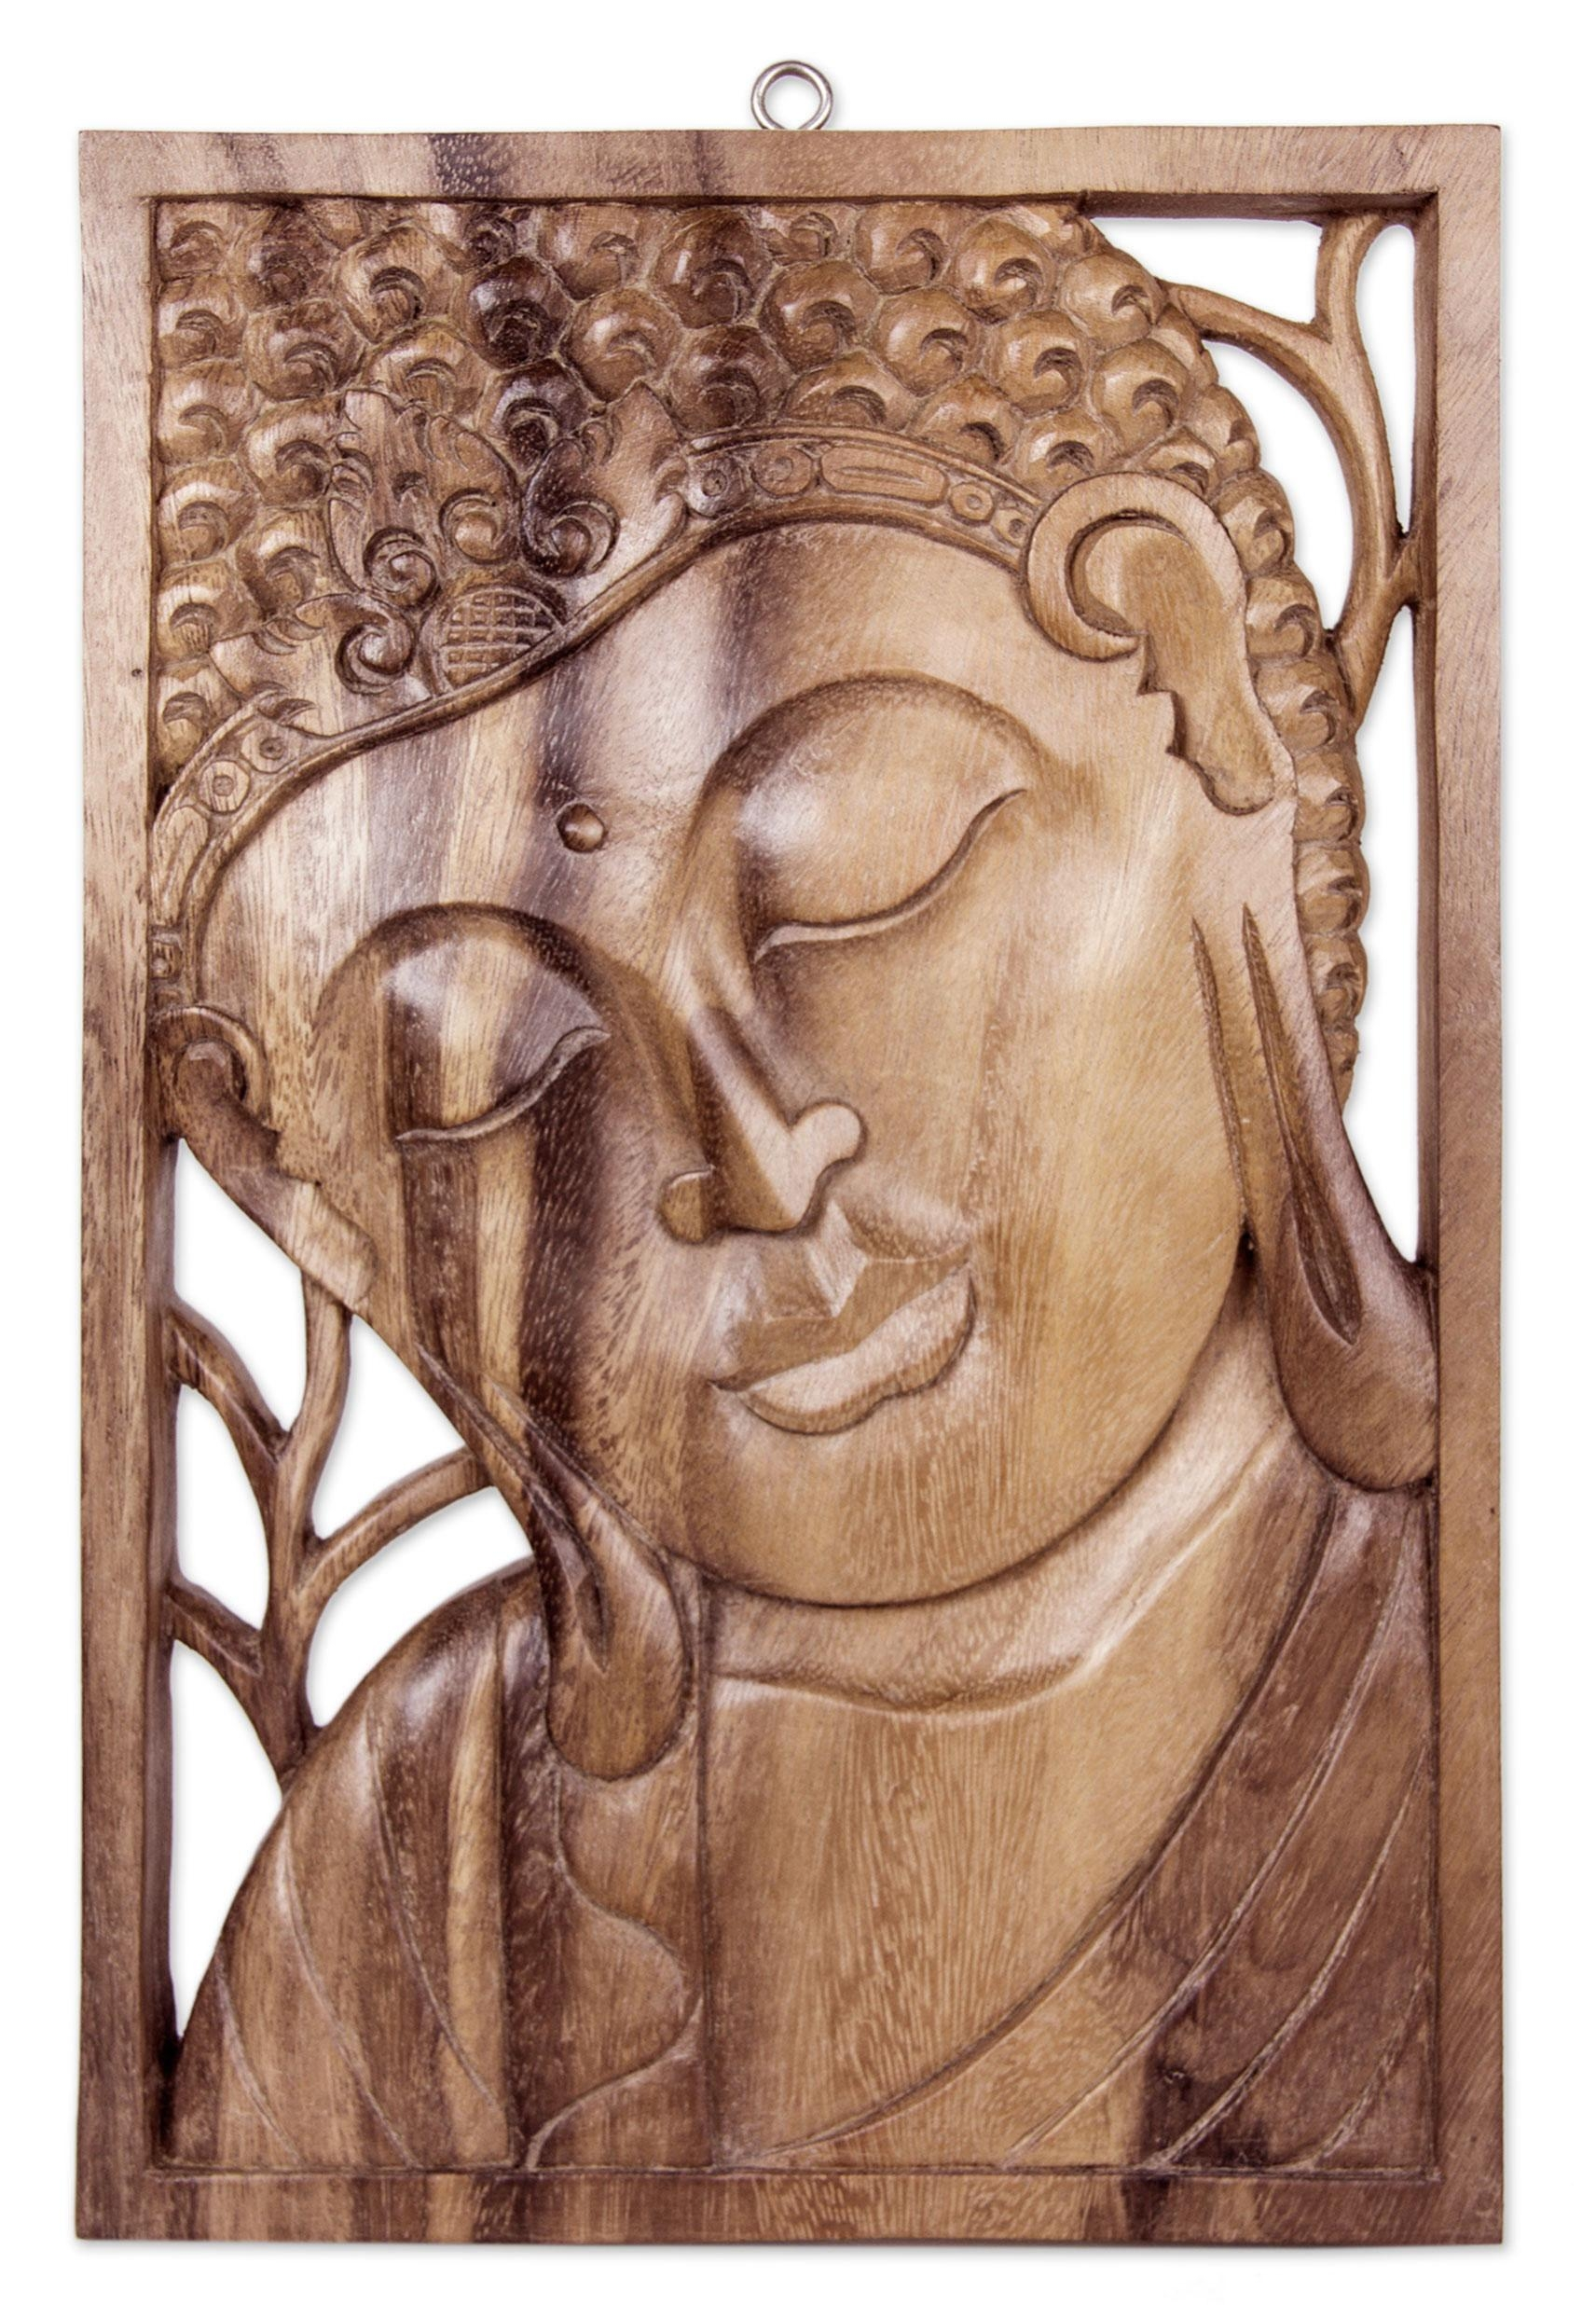 Zen Home Decor Ideas - Buddha Decor And Art | Novica intended for Balinese Wall Art